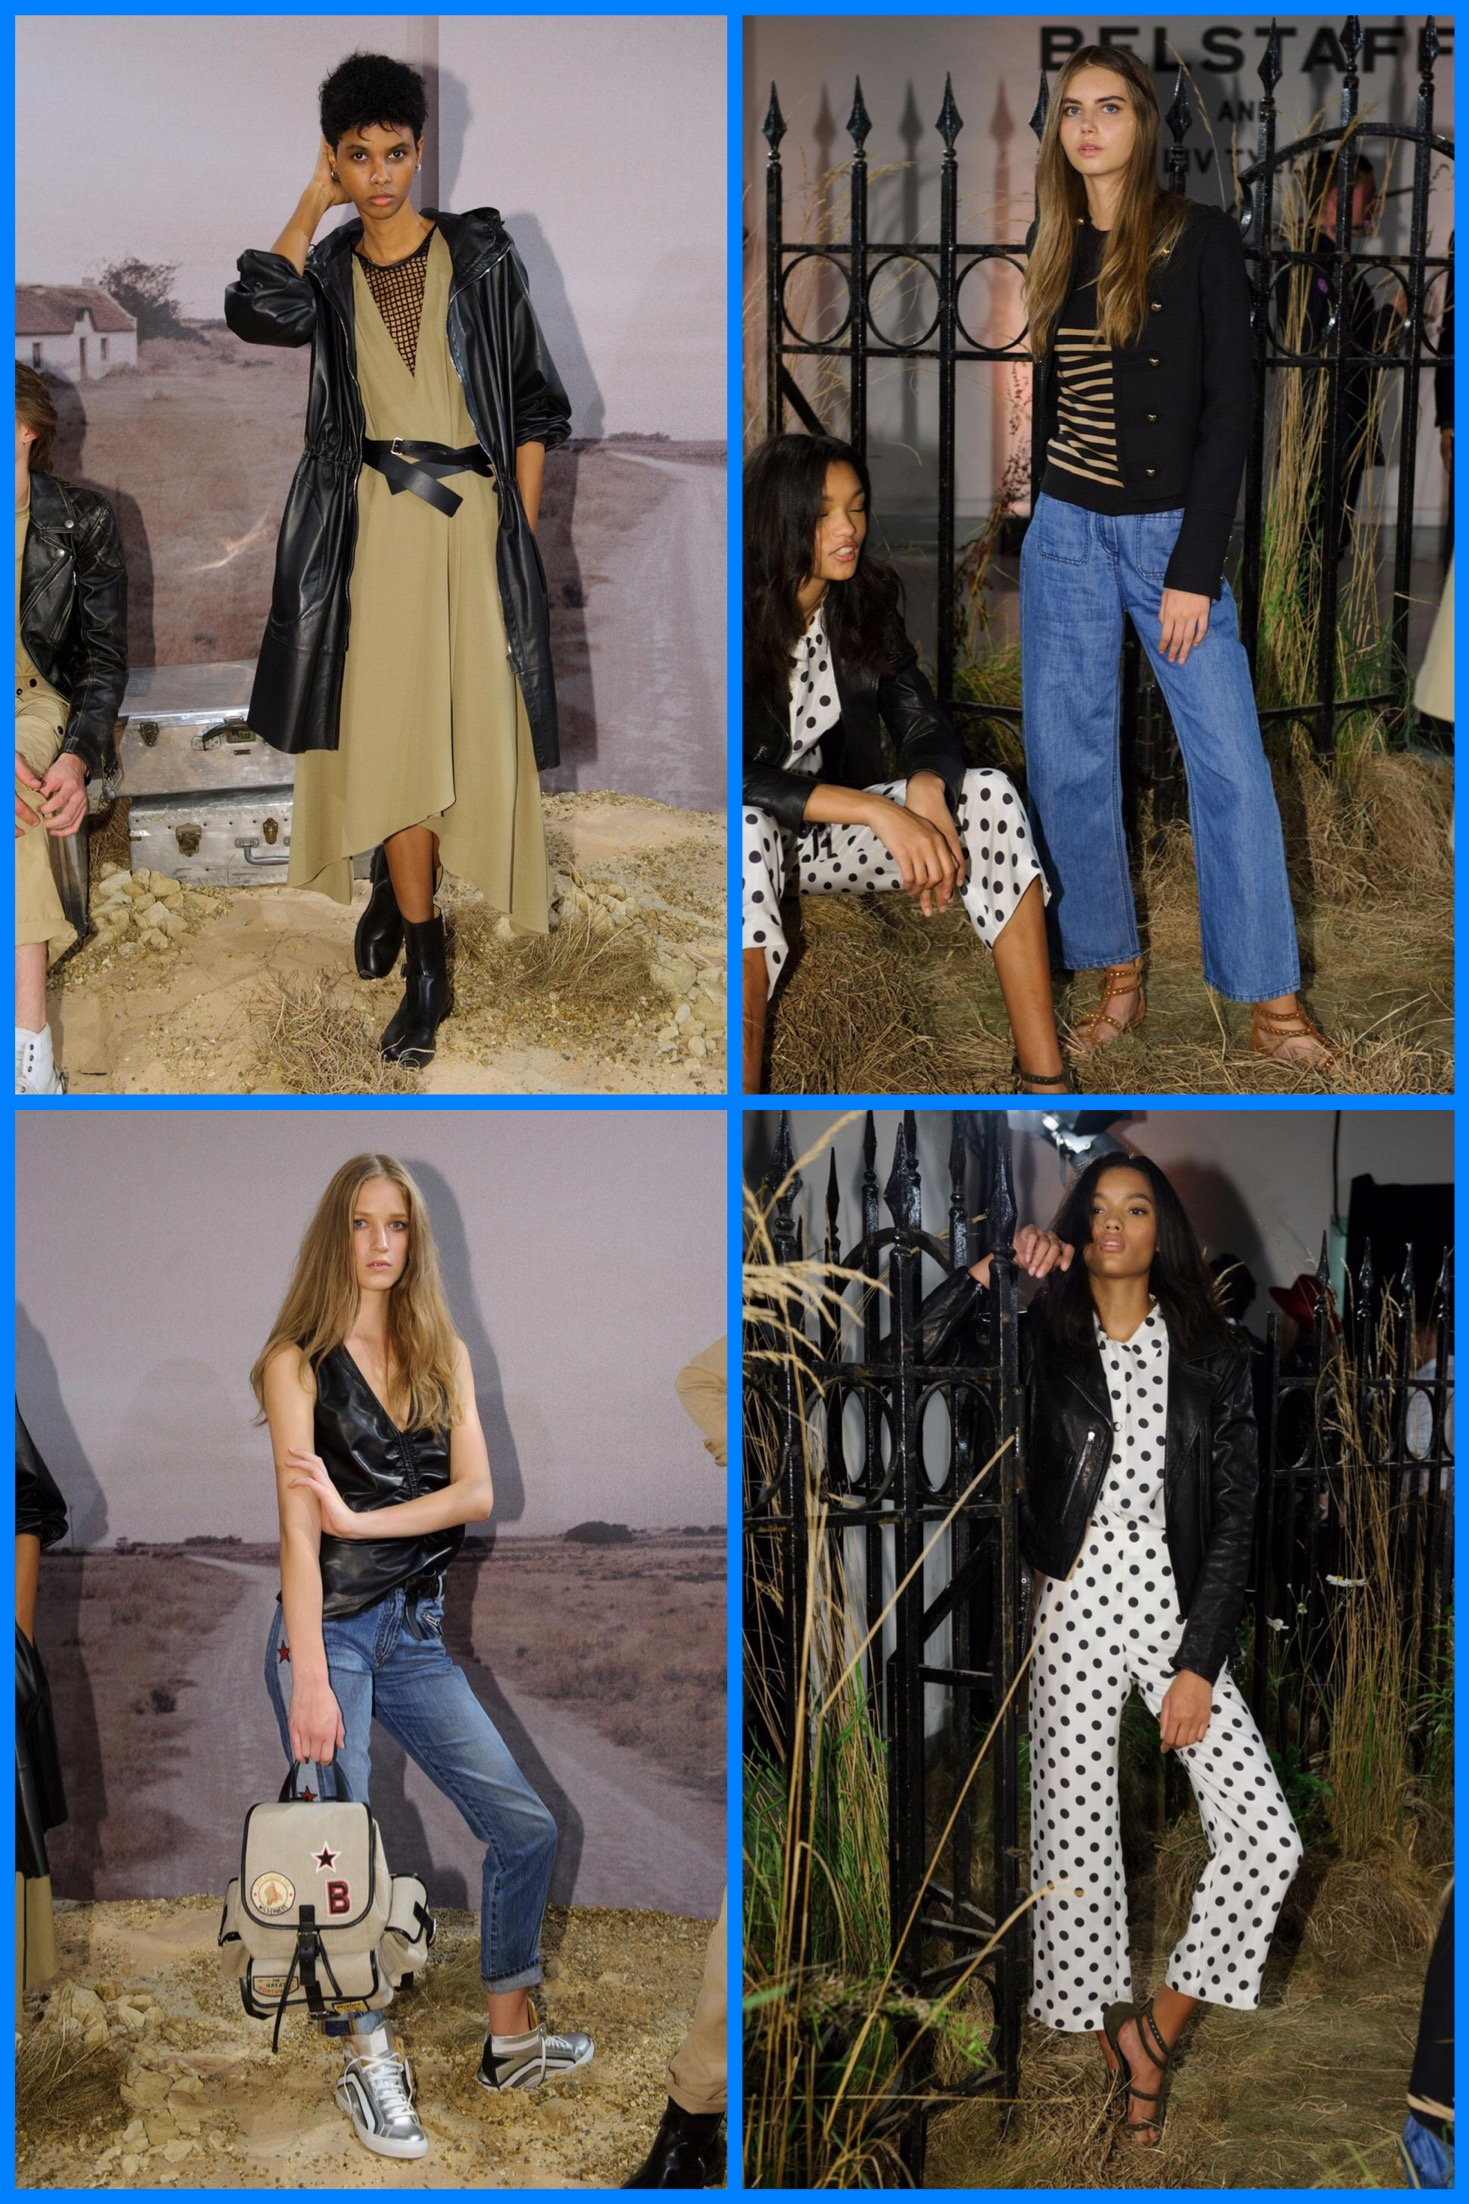 london-fashion-week-pret-a-porter-spring-summer-2017-style-belstaff